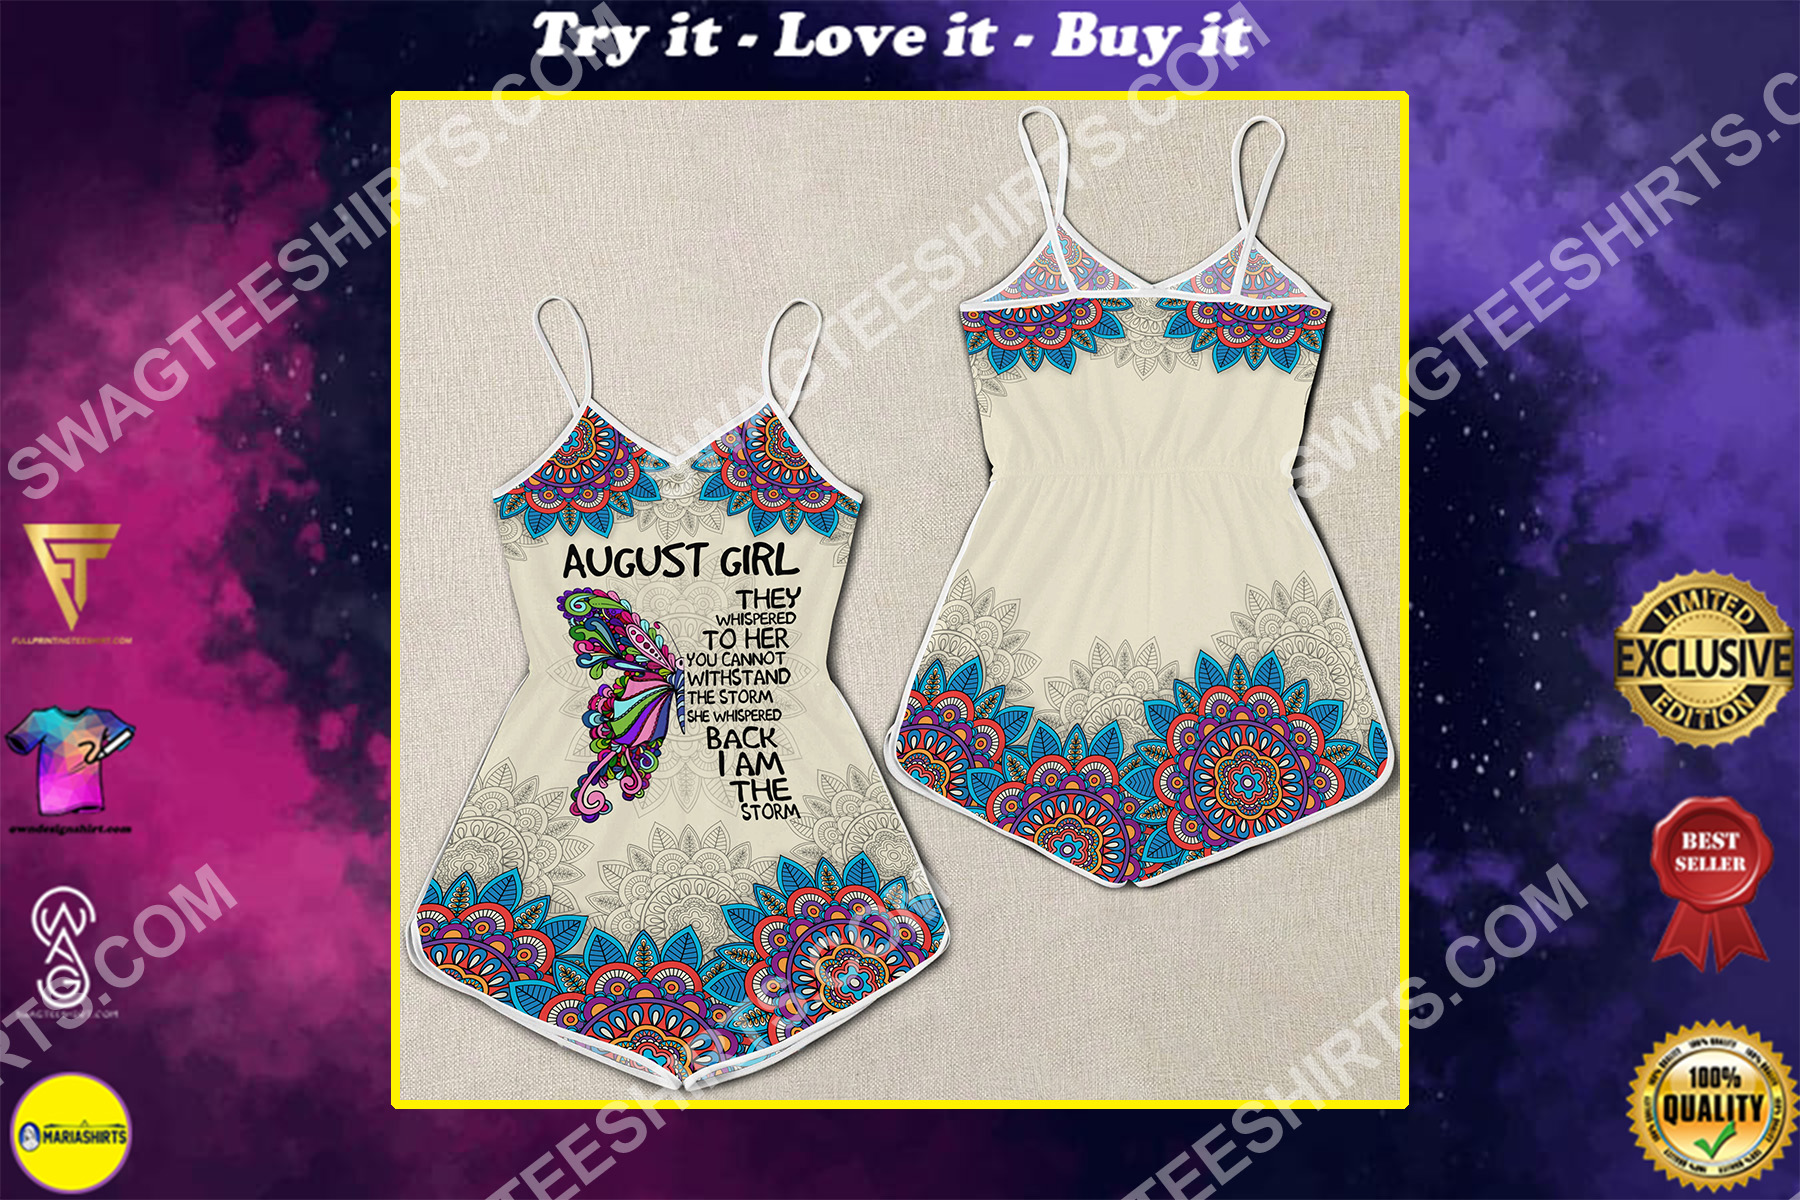 august girl they whispered to her you cannot withstand the storm rompers